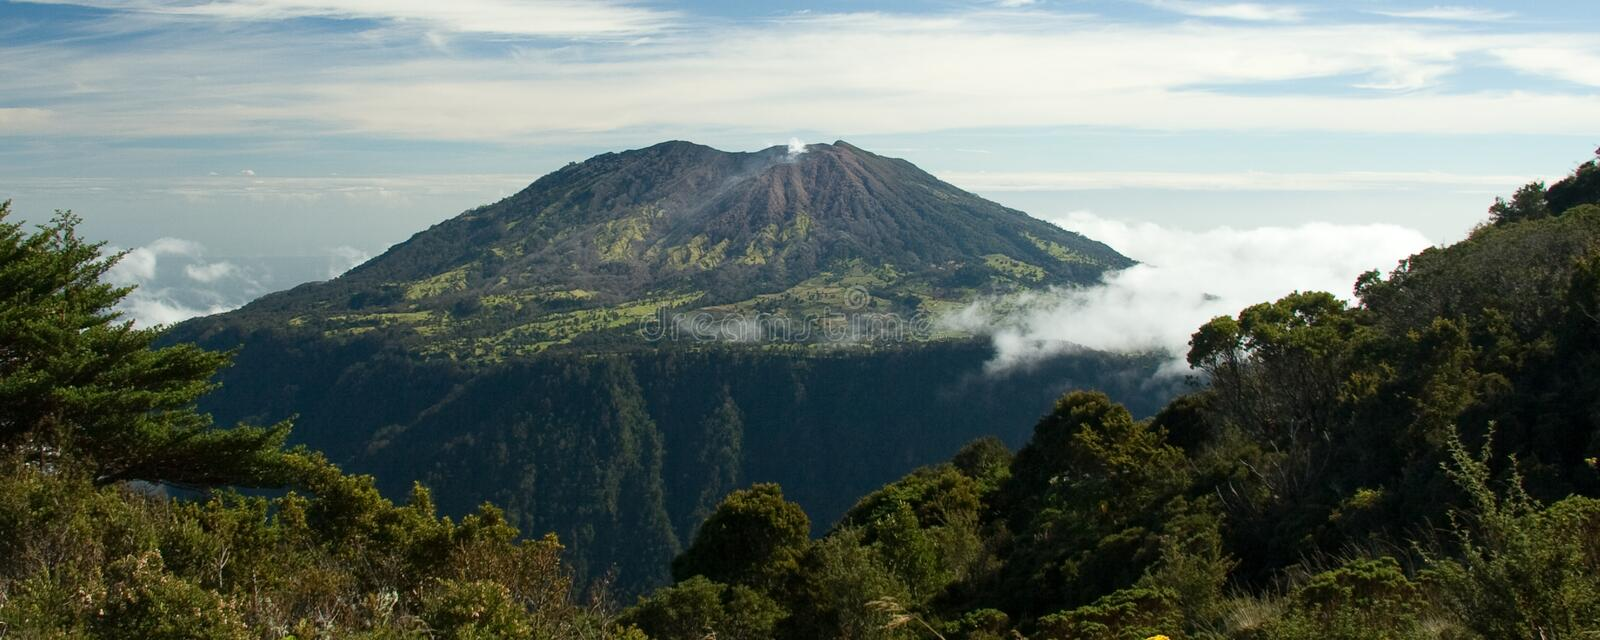 Turrialba Volcano stock photo